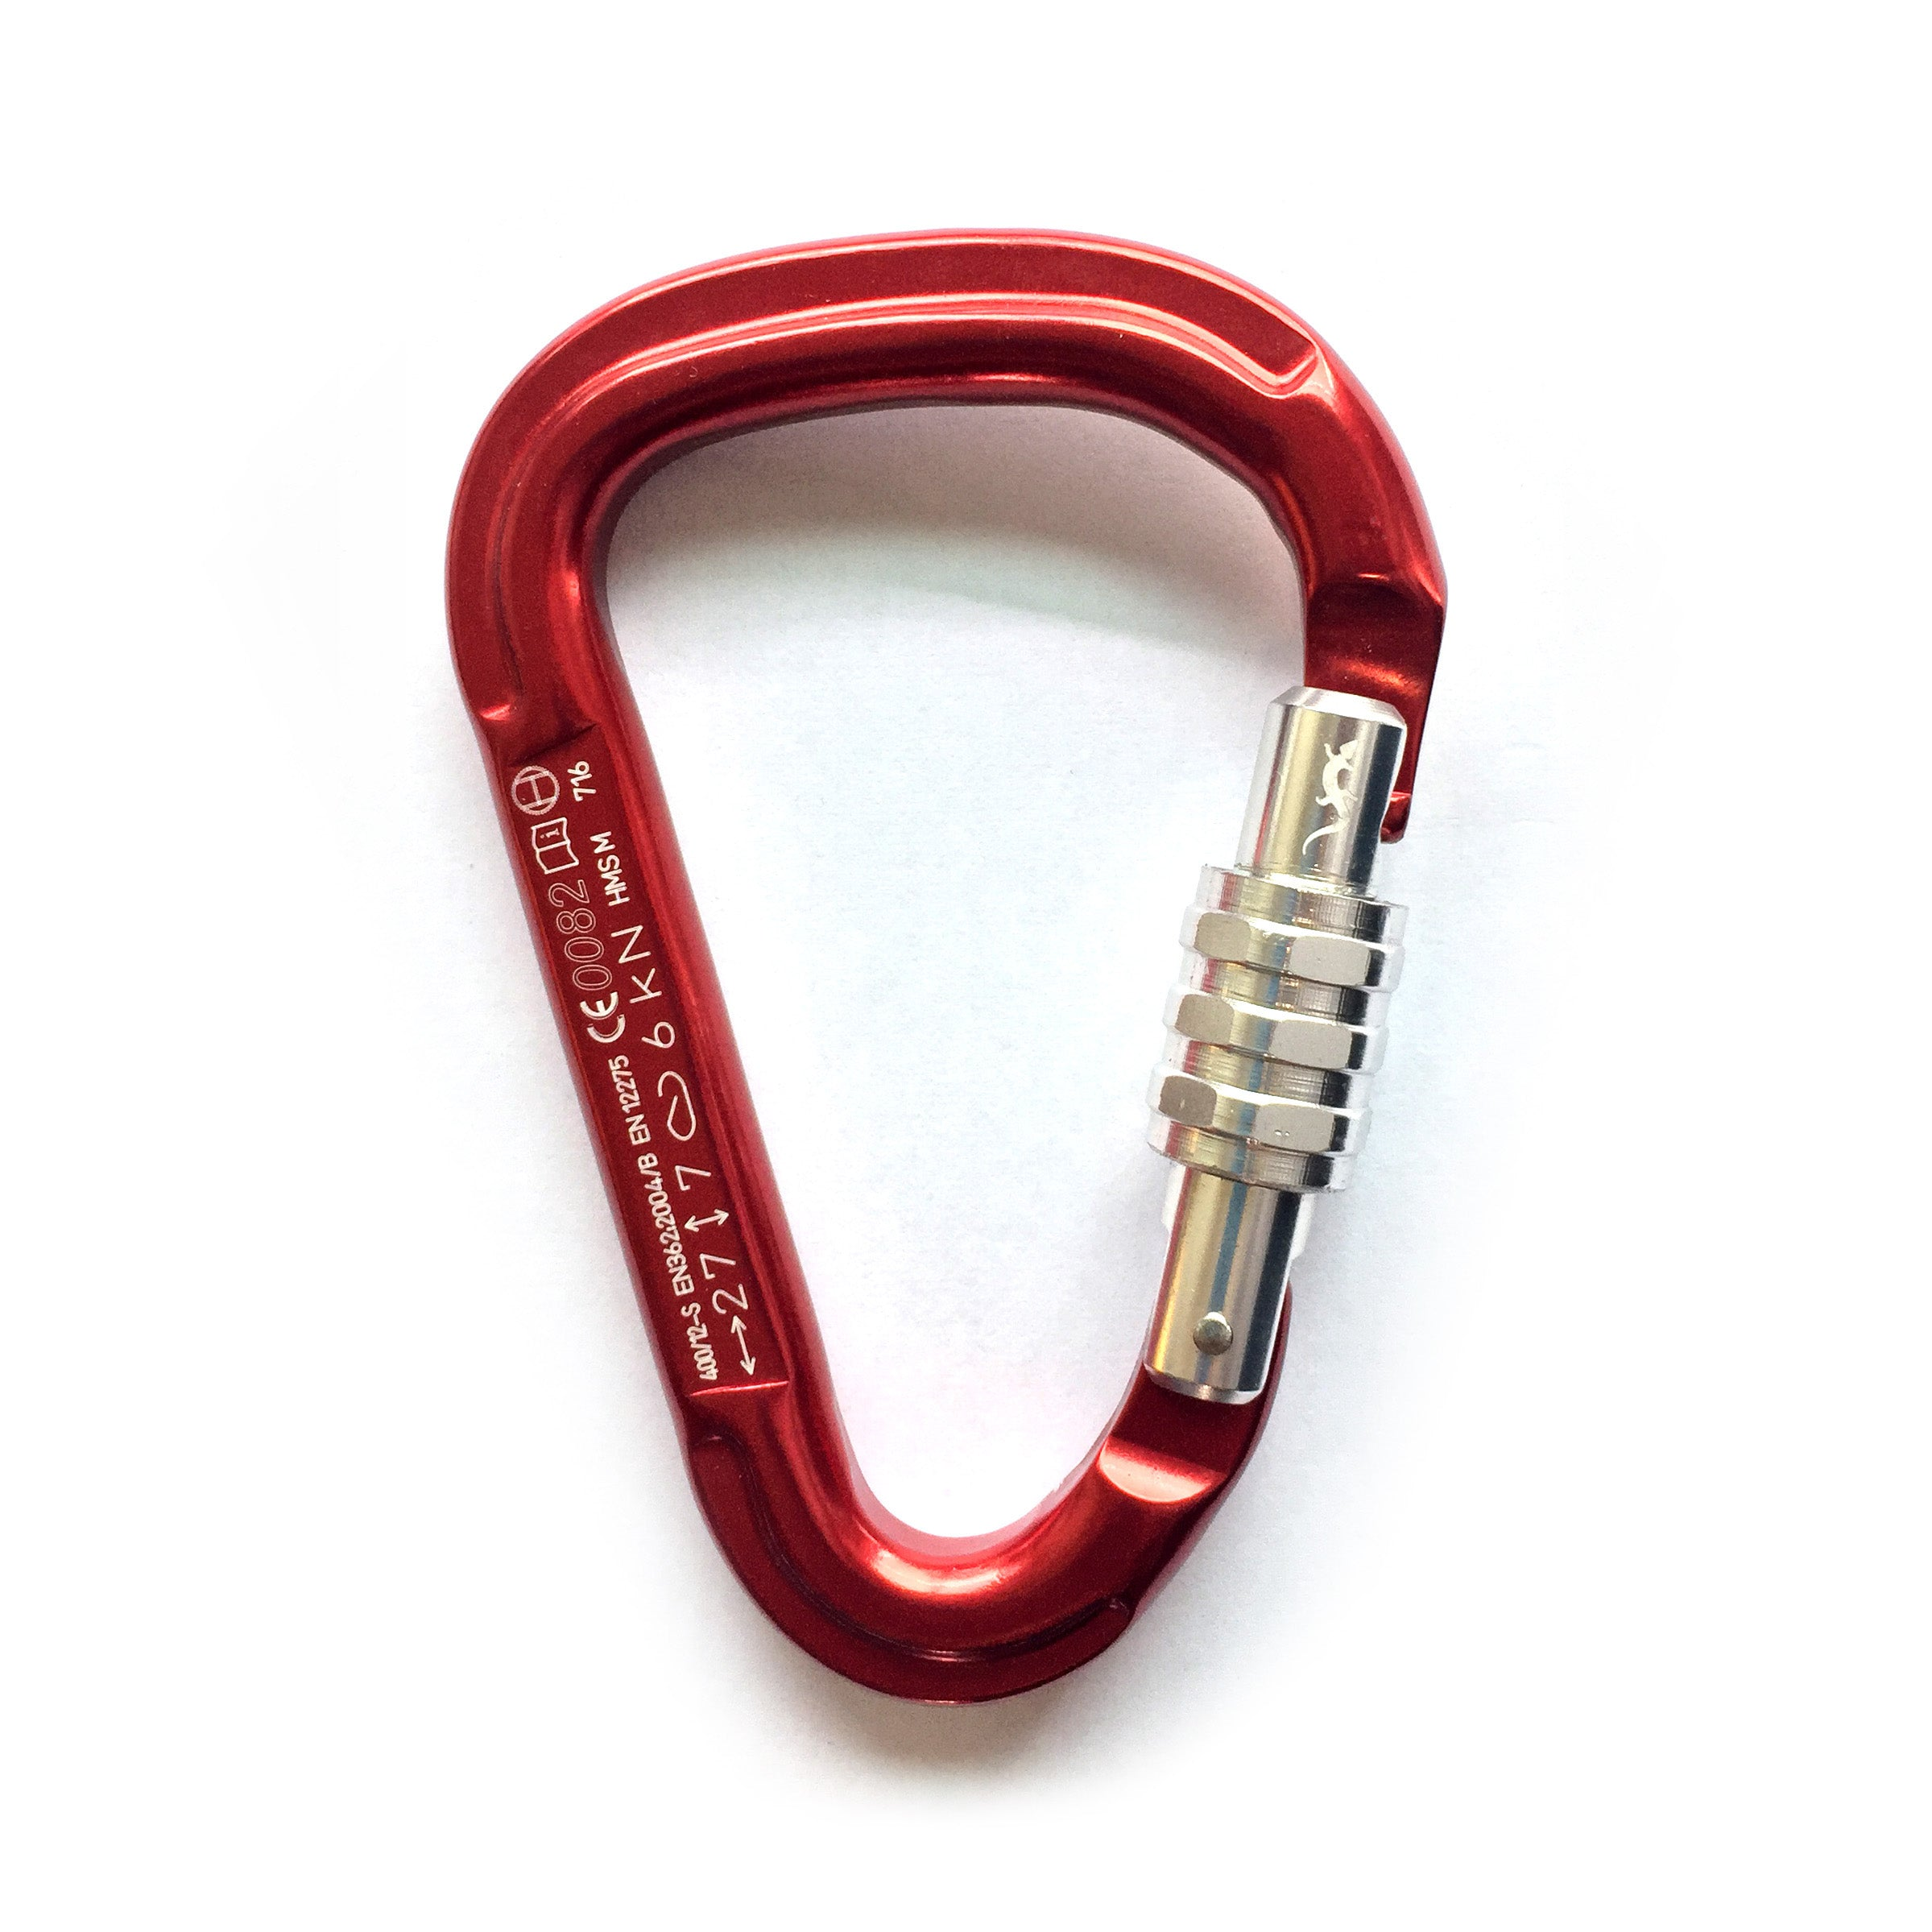 FADERS Aluminium HMS Safety Locking Carabiner